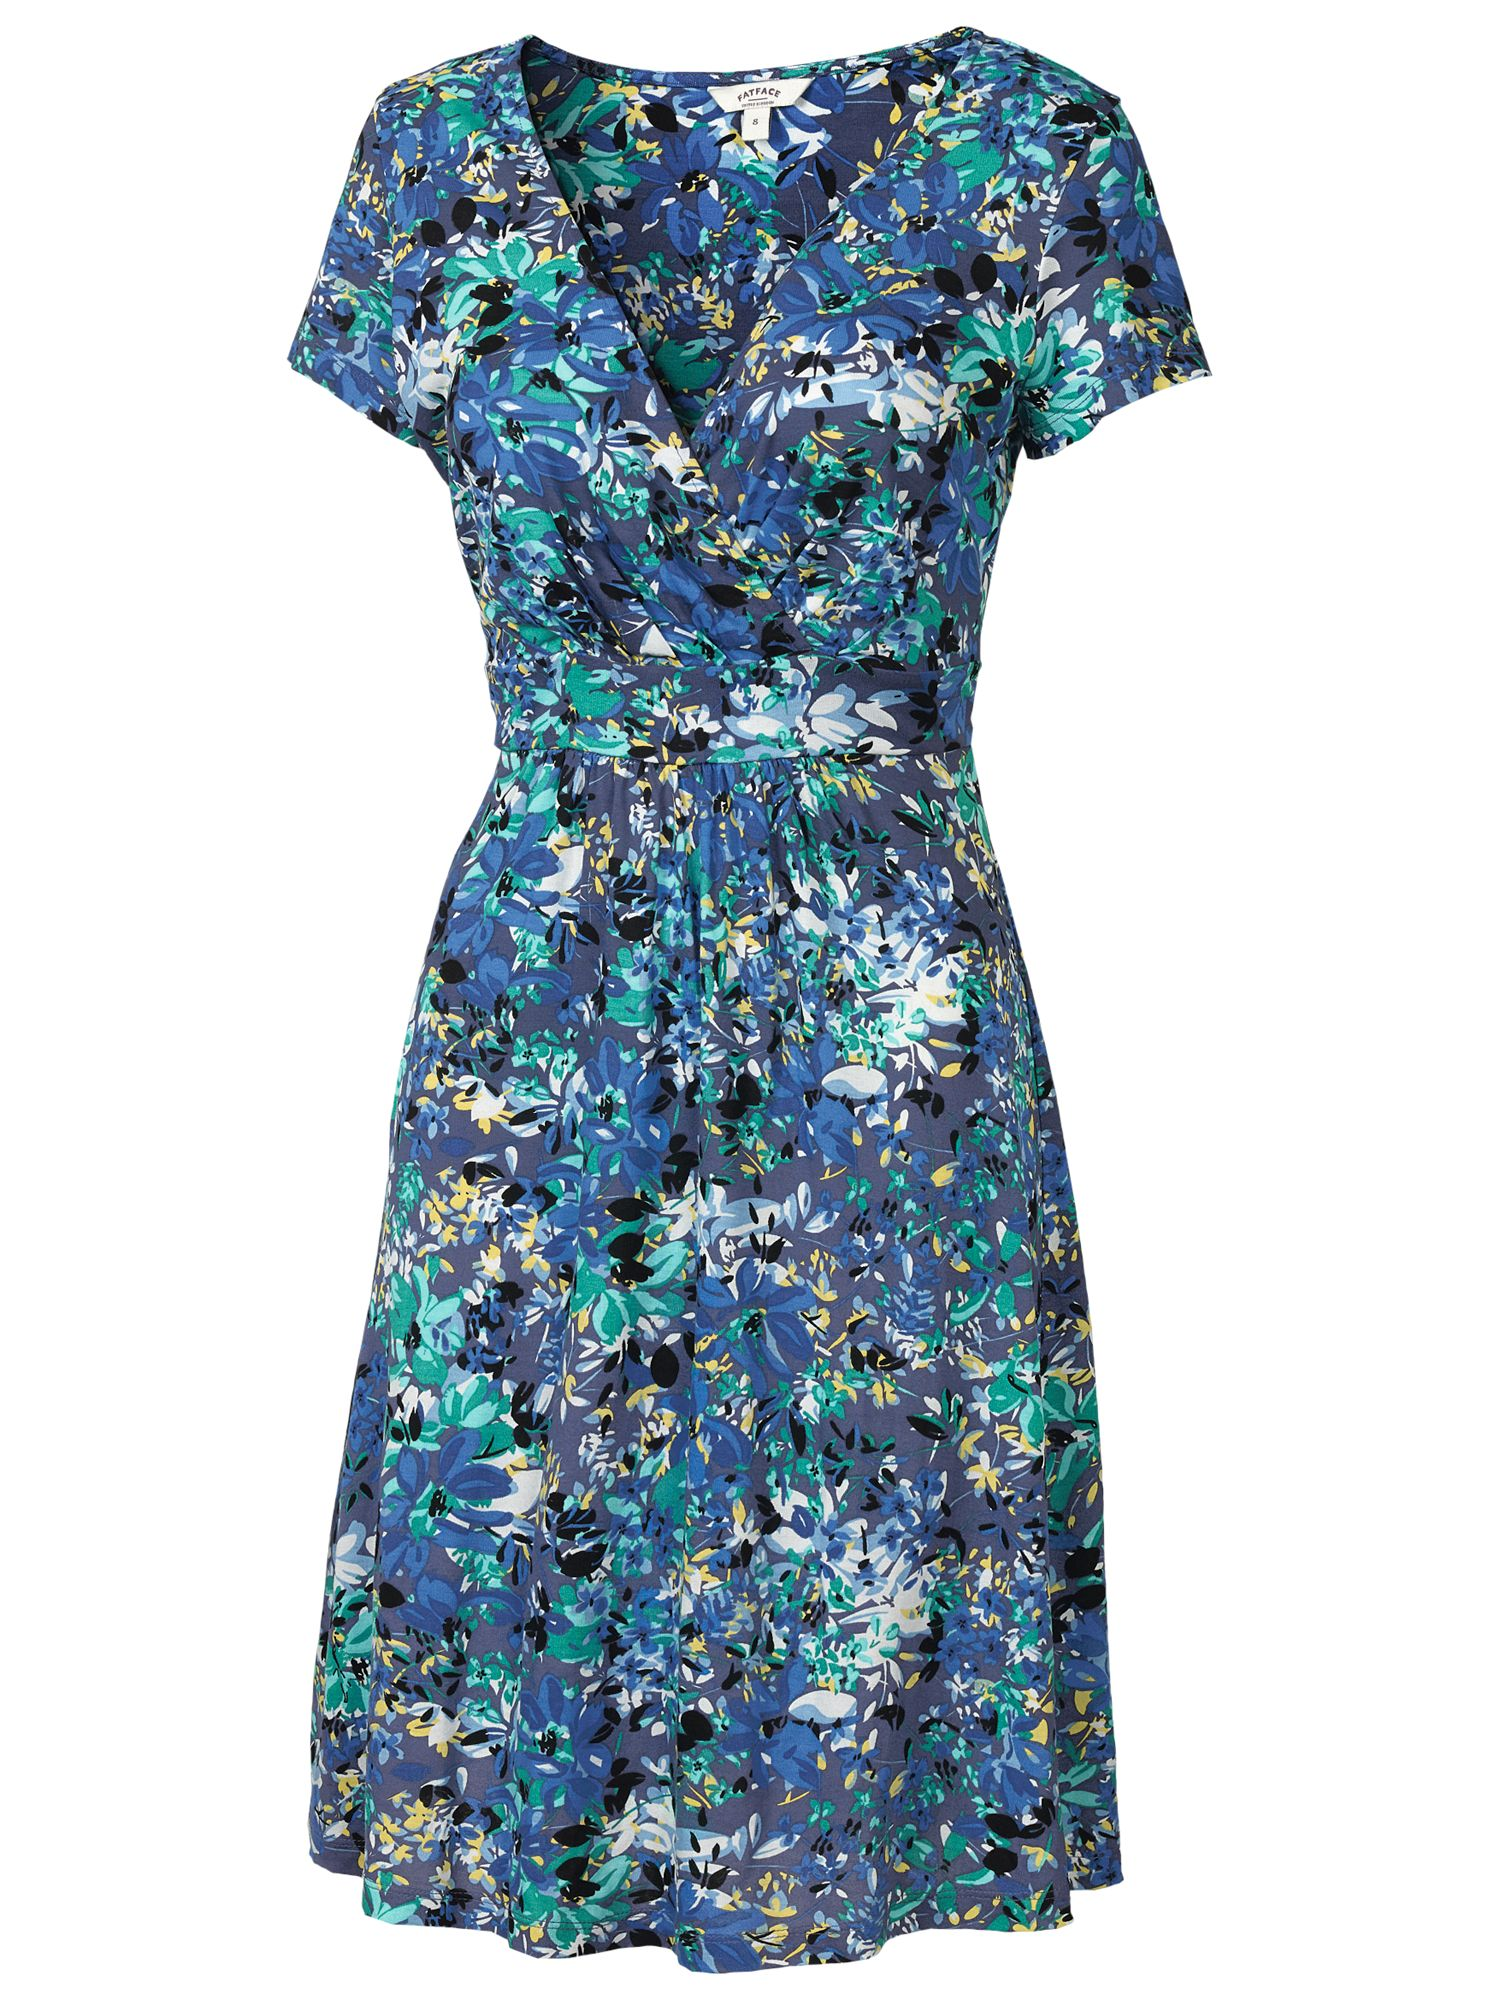 fat face camille abstract floral dress dark chambray, fat, face, camille, abstract, floral, dress, dark, chambray, fat face, 8|14|10, women, brands a-k, inactive womenswear, womens dresses, special offers, womenswear offers, womens dresses offers, 1845281